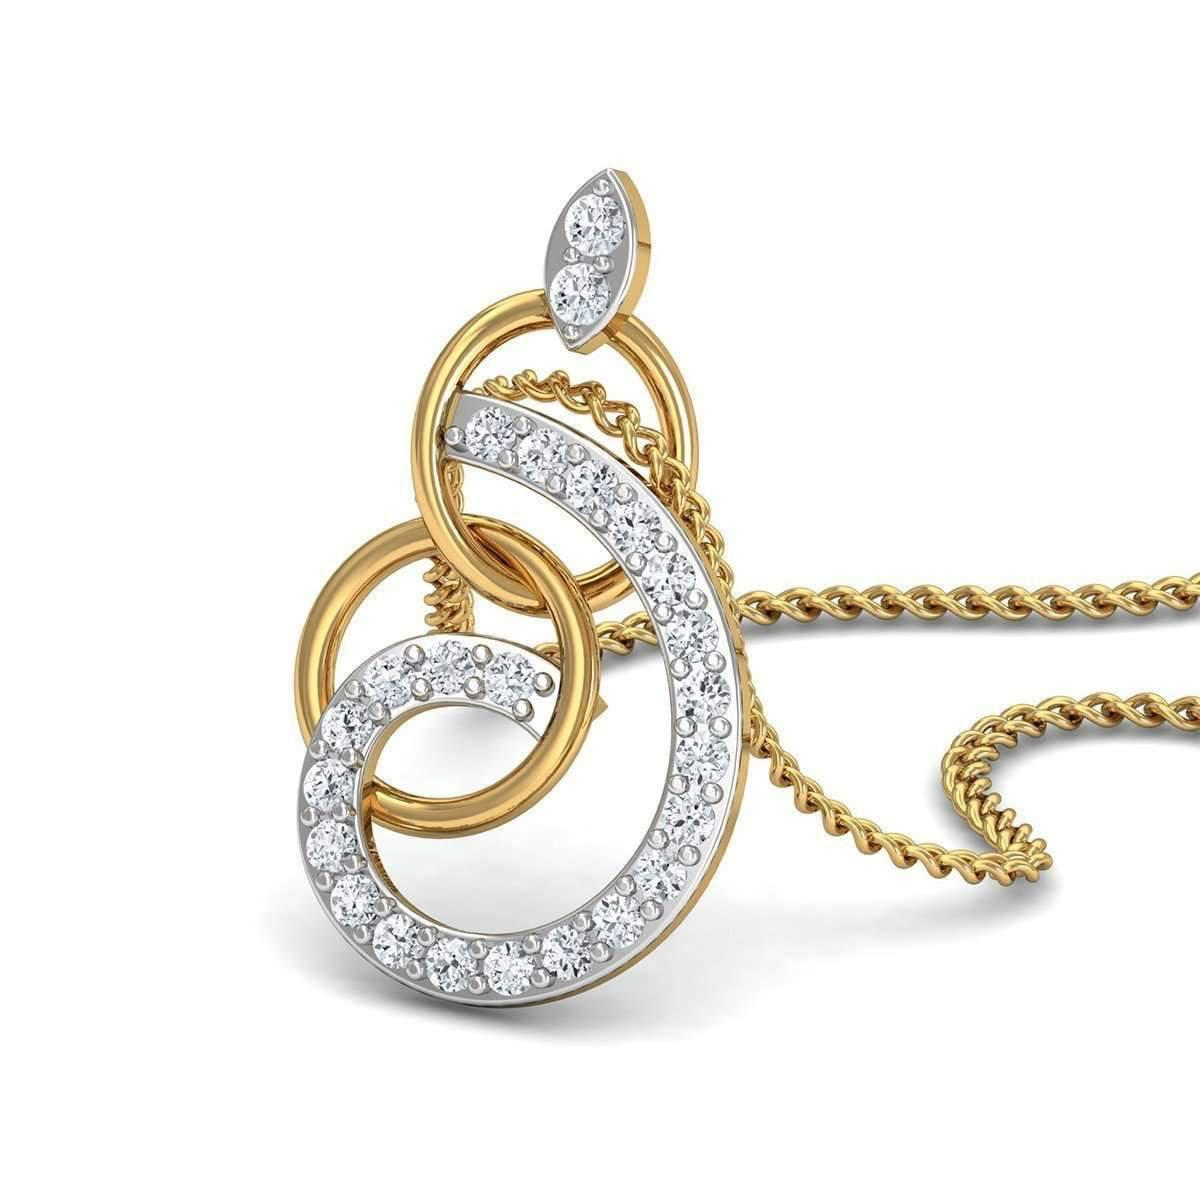 Diamoire Jewels Diamonds and 18kt Yellow Gold Nature inspired Luxe Pave Pendant